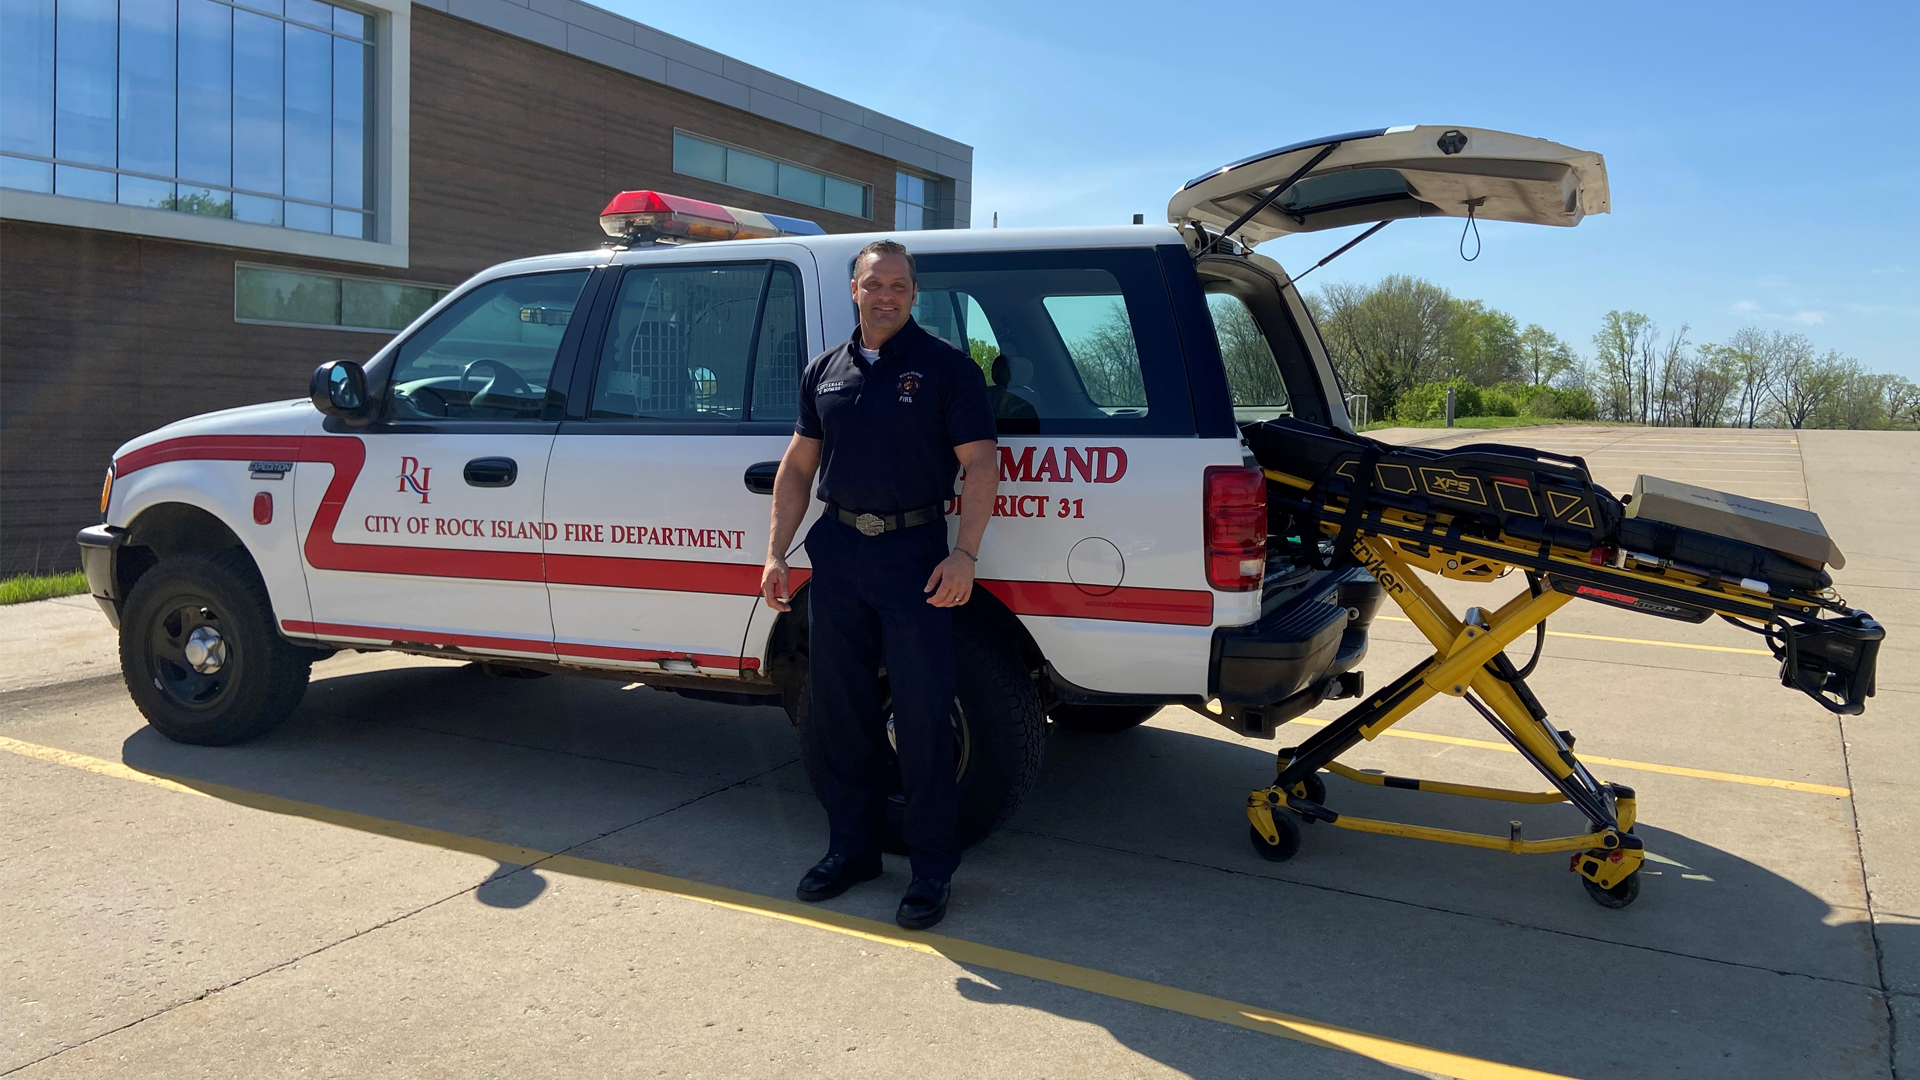 Chris Rogers of the Rock Island Fire Department poses with the Stryker power cot that was recently donated to the Black Hawk College EMS program.